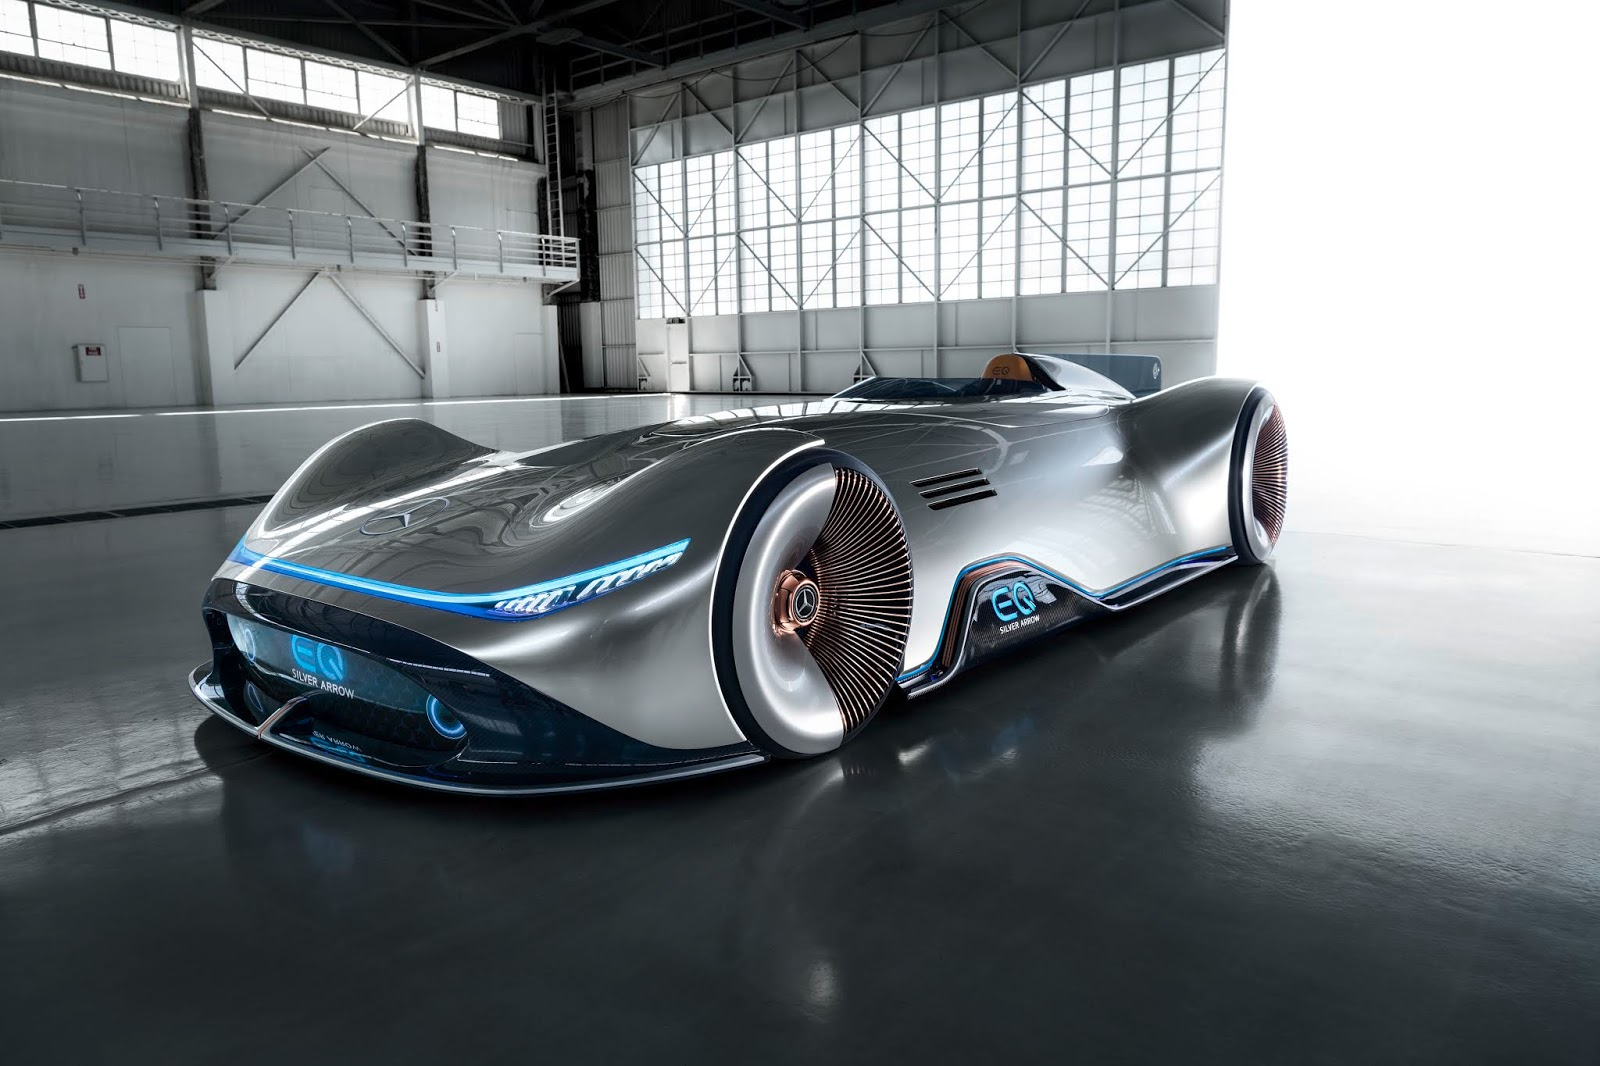 Mercedes Benz Eq Silver Arrow Ev Concept